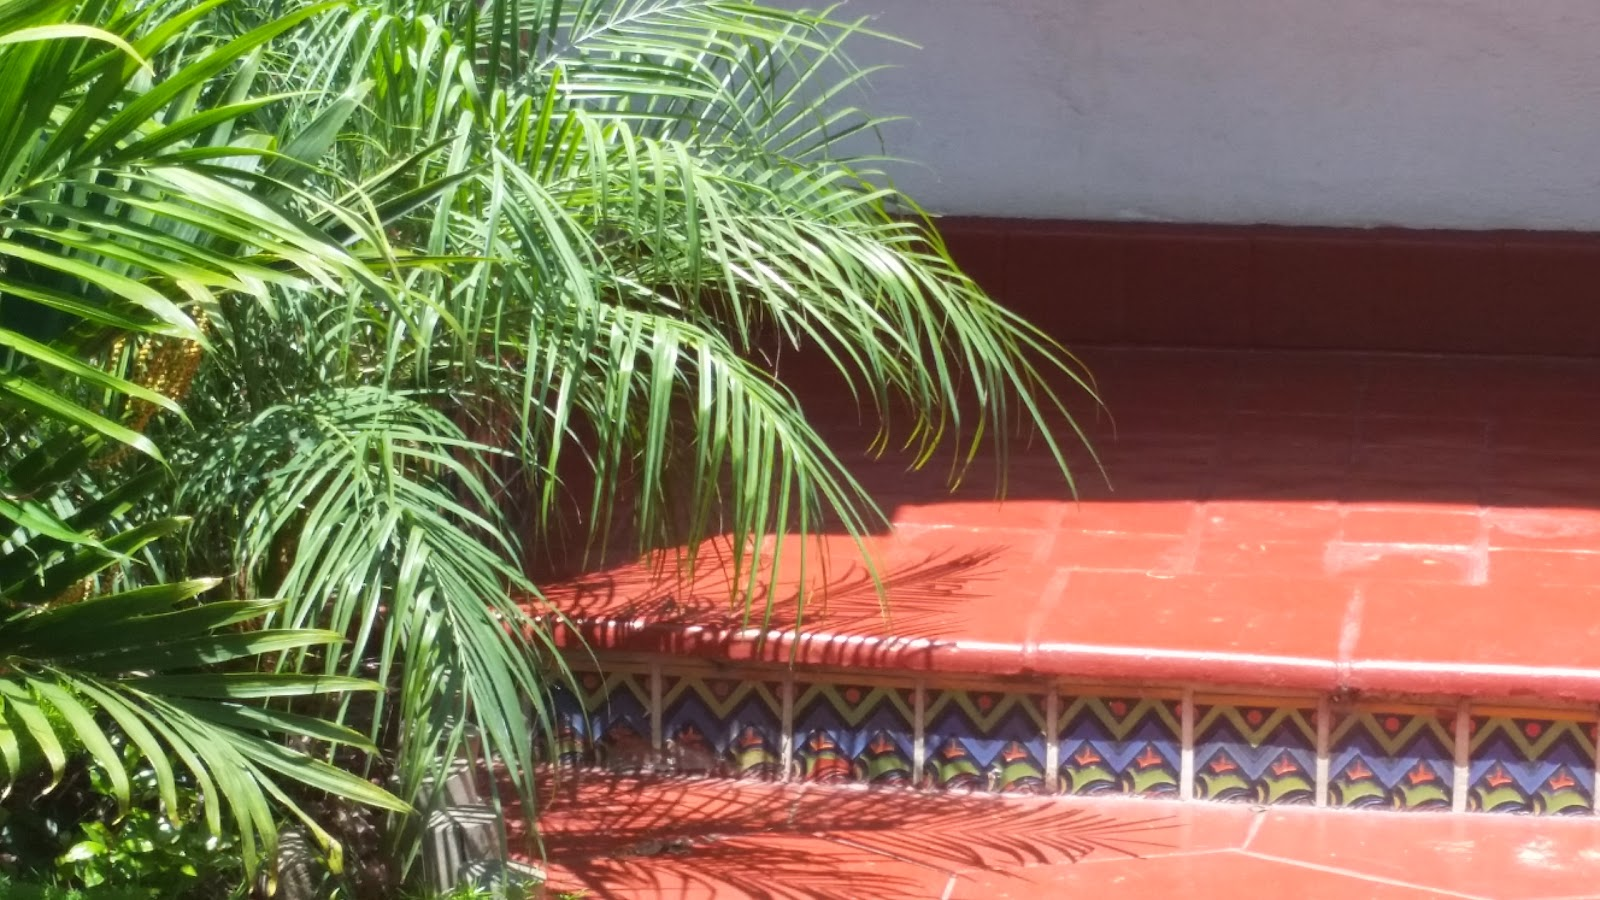 Brightly colored tile are influences of Spanish Revival architecture